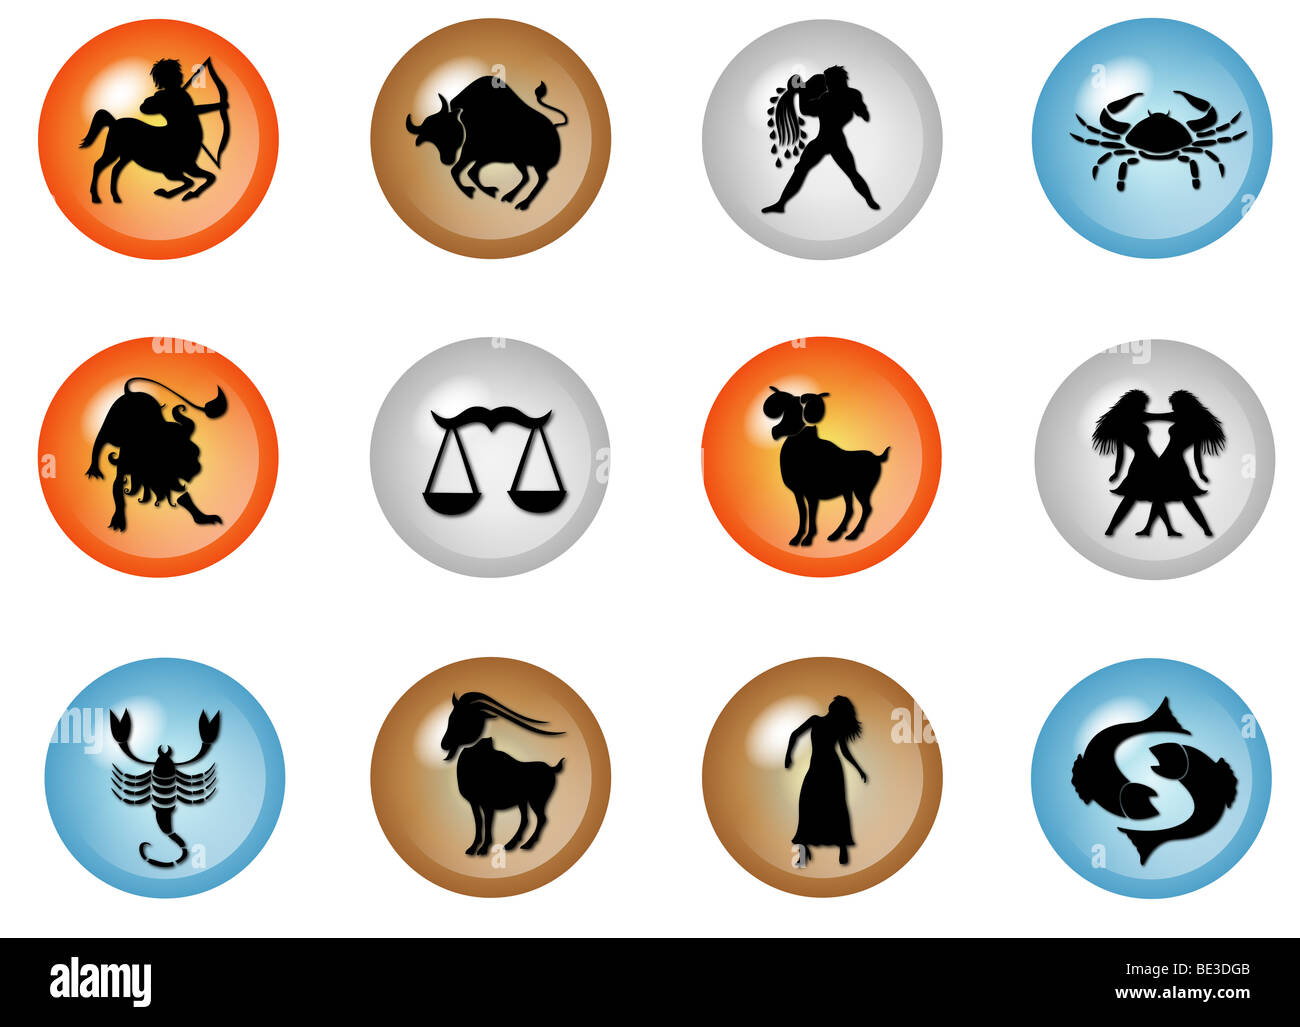 illustration of 12 colorful zodiac web buttons - Stock Image